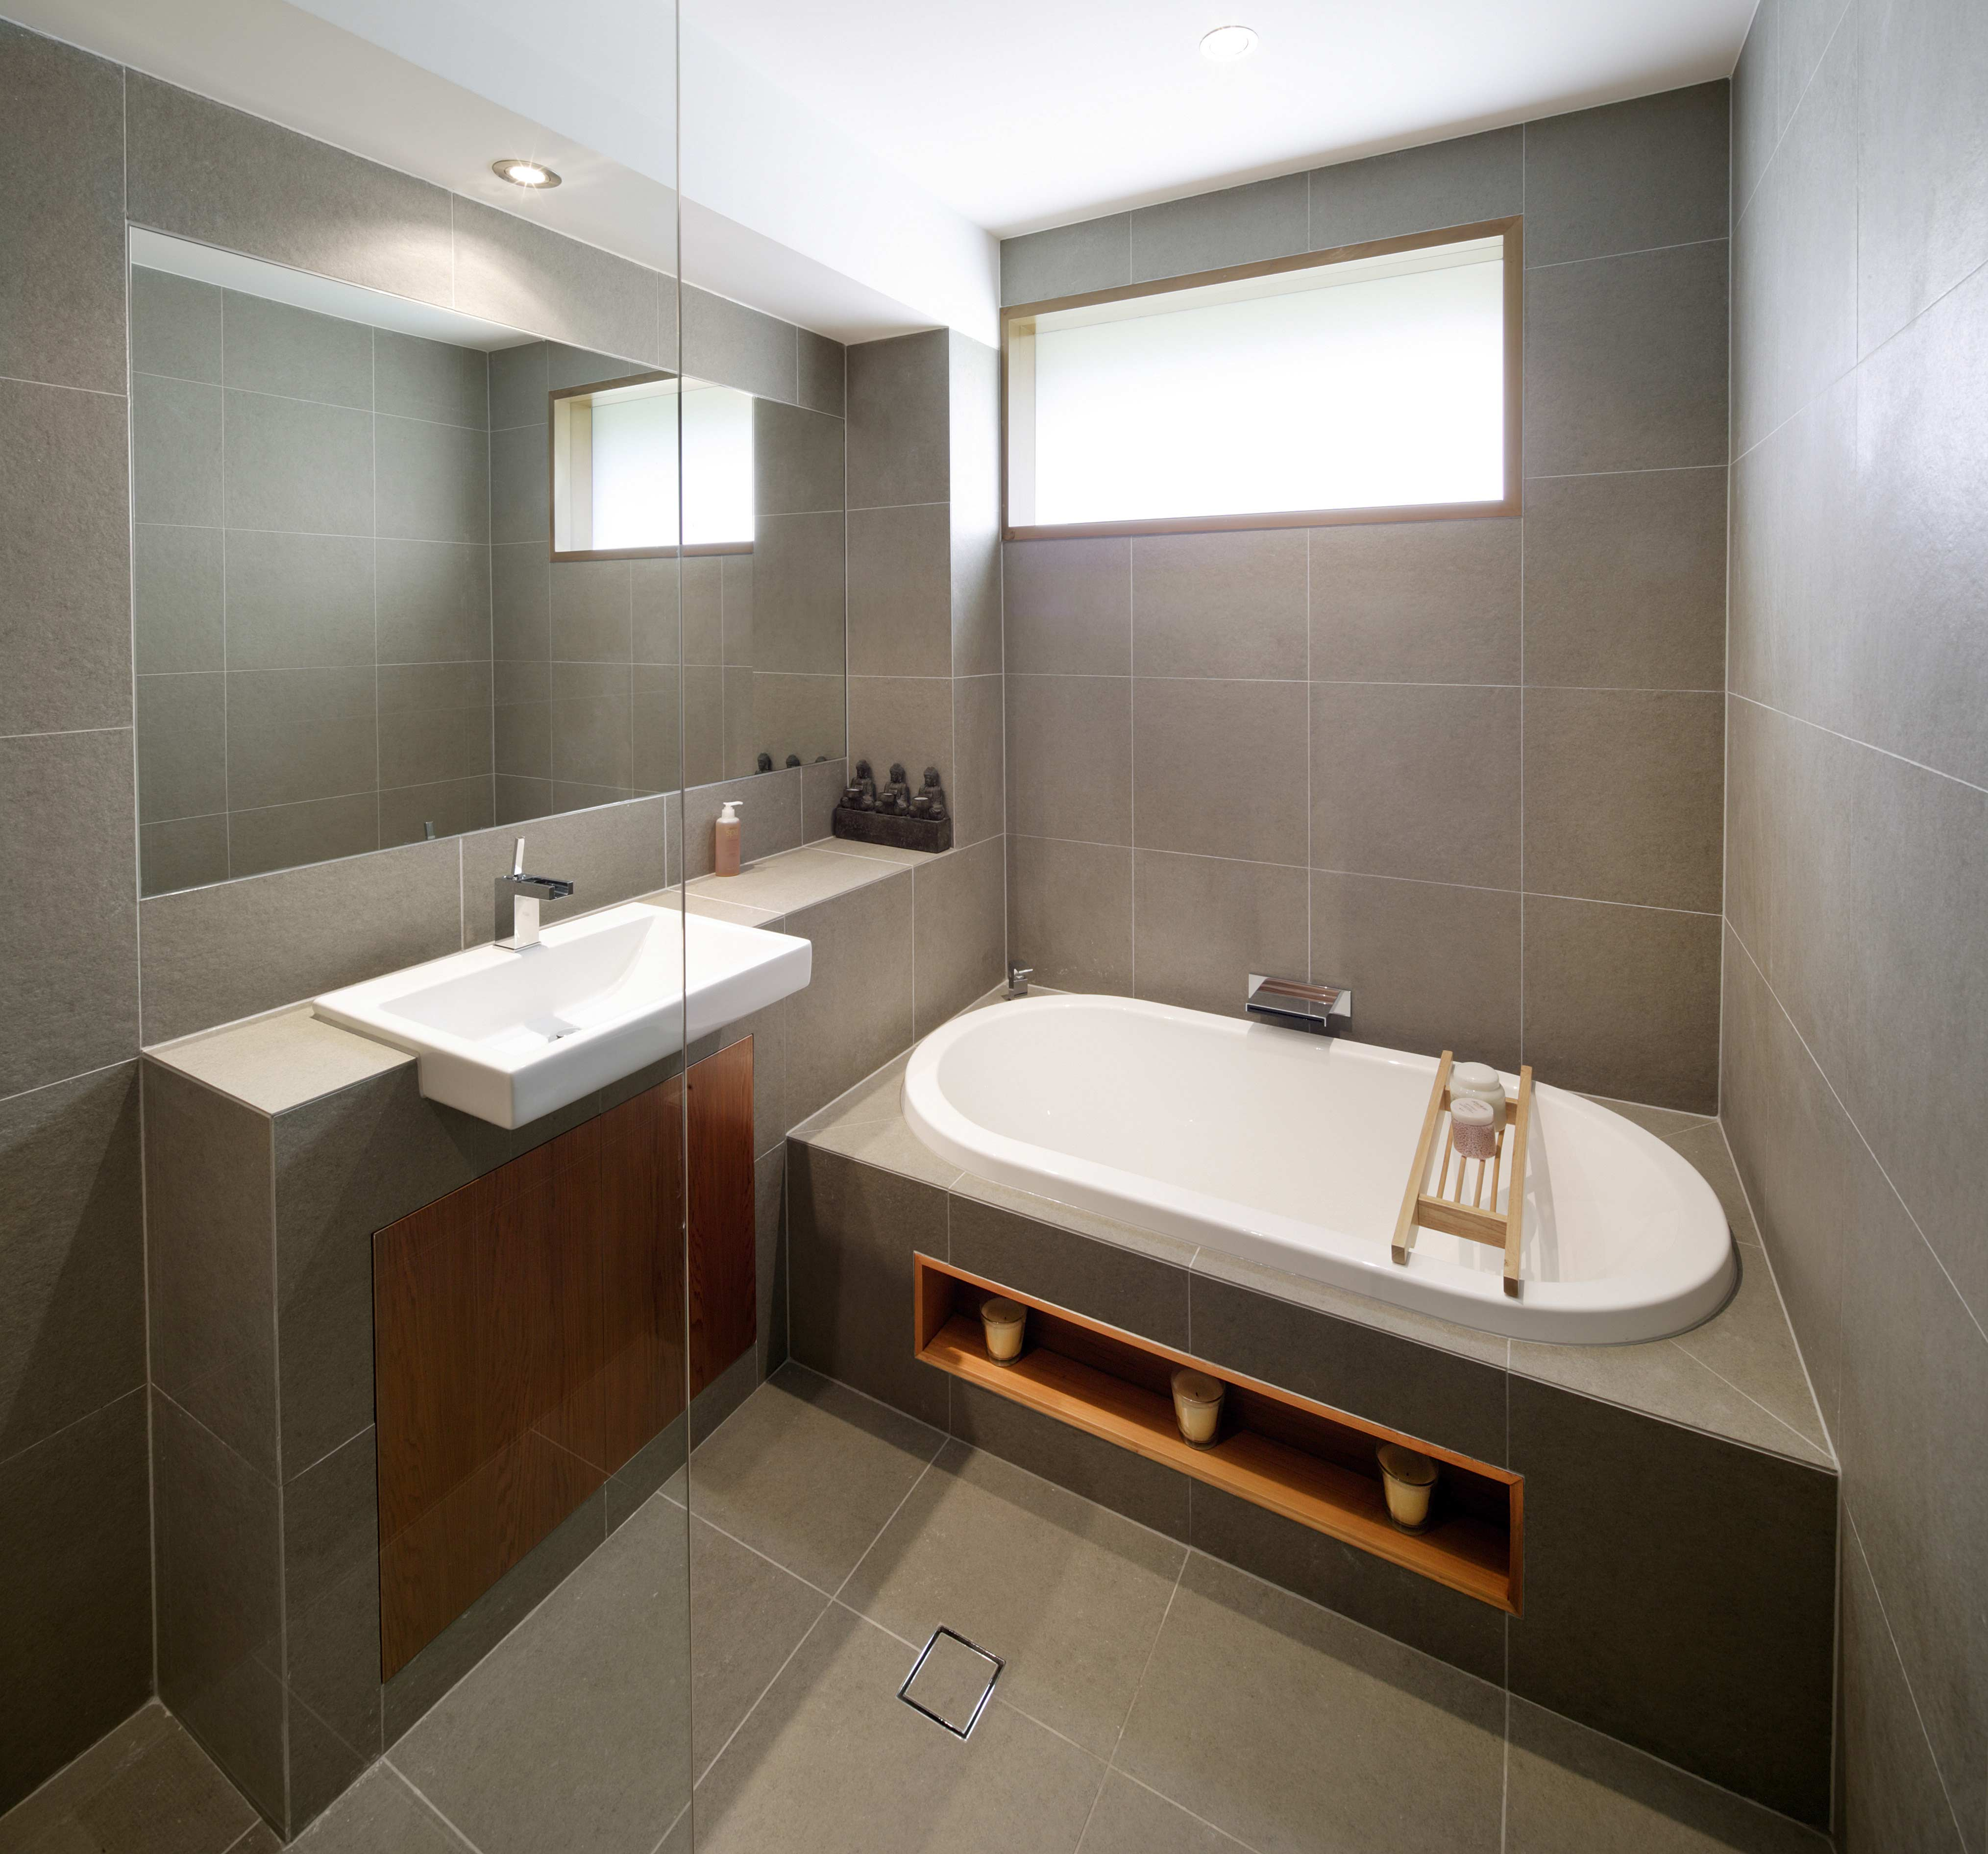 Small Bathroom Renovations Designs Sydney  Best Vanities for Bathrooms in  Sydney. Small Bathroom Renovations Designs Sydney  Best Vanities for